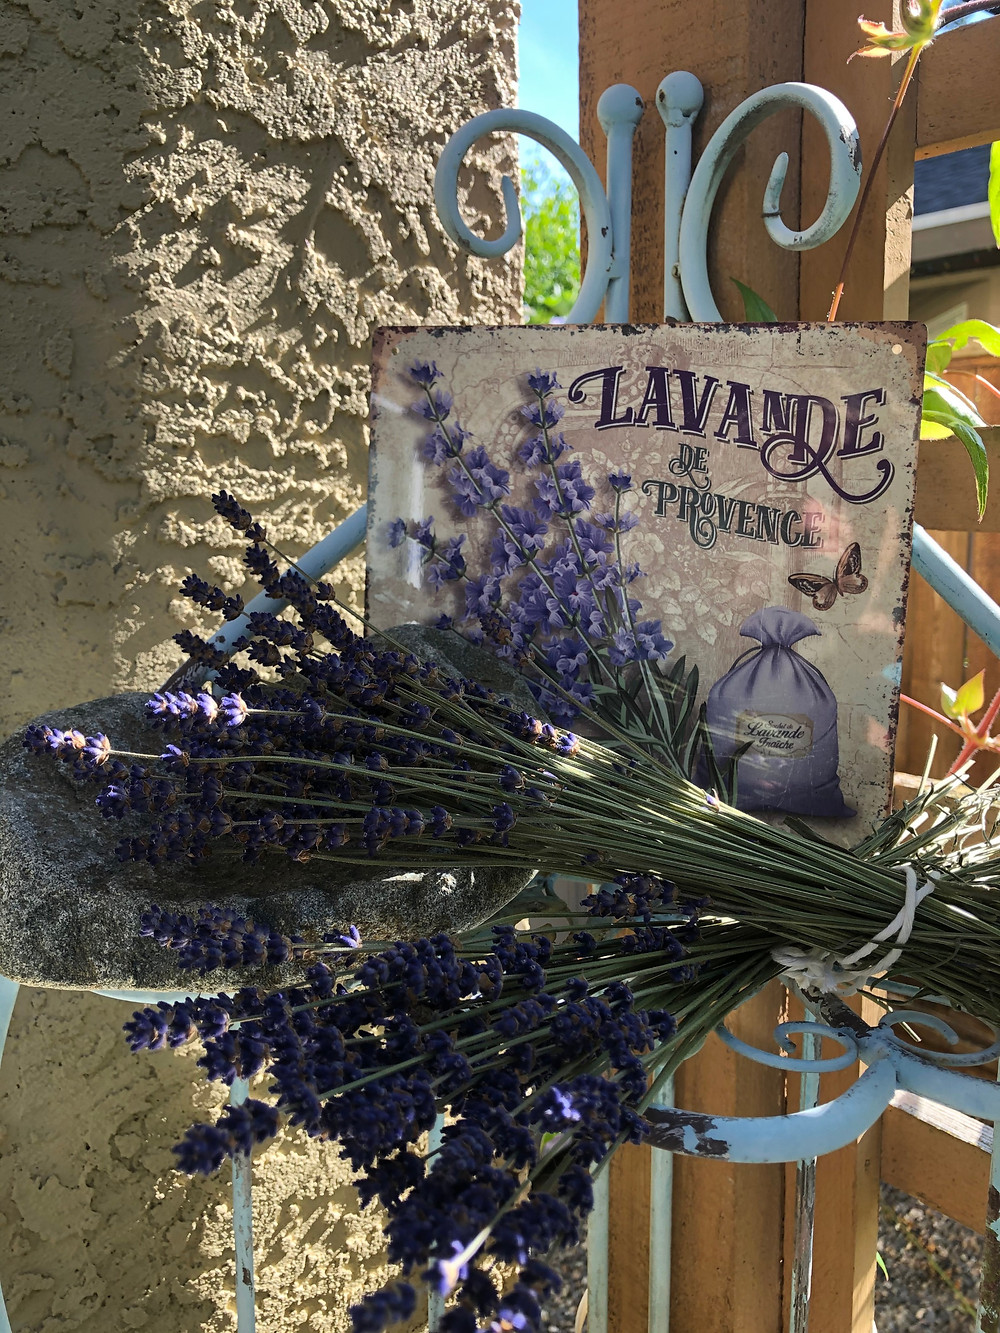 Bunches of Lavender on a Blue Chippy Lavender Stand with a Lavande de Provence Sign